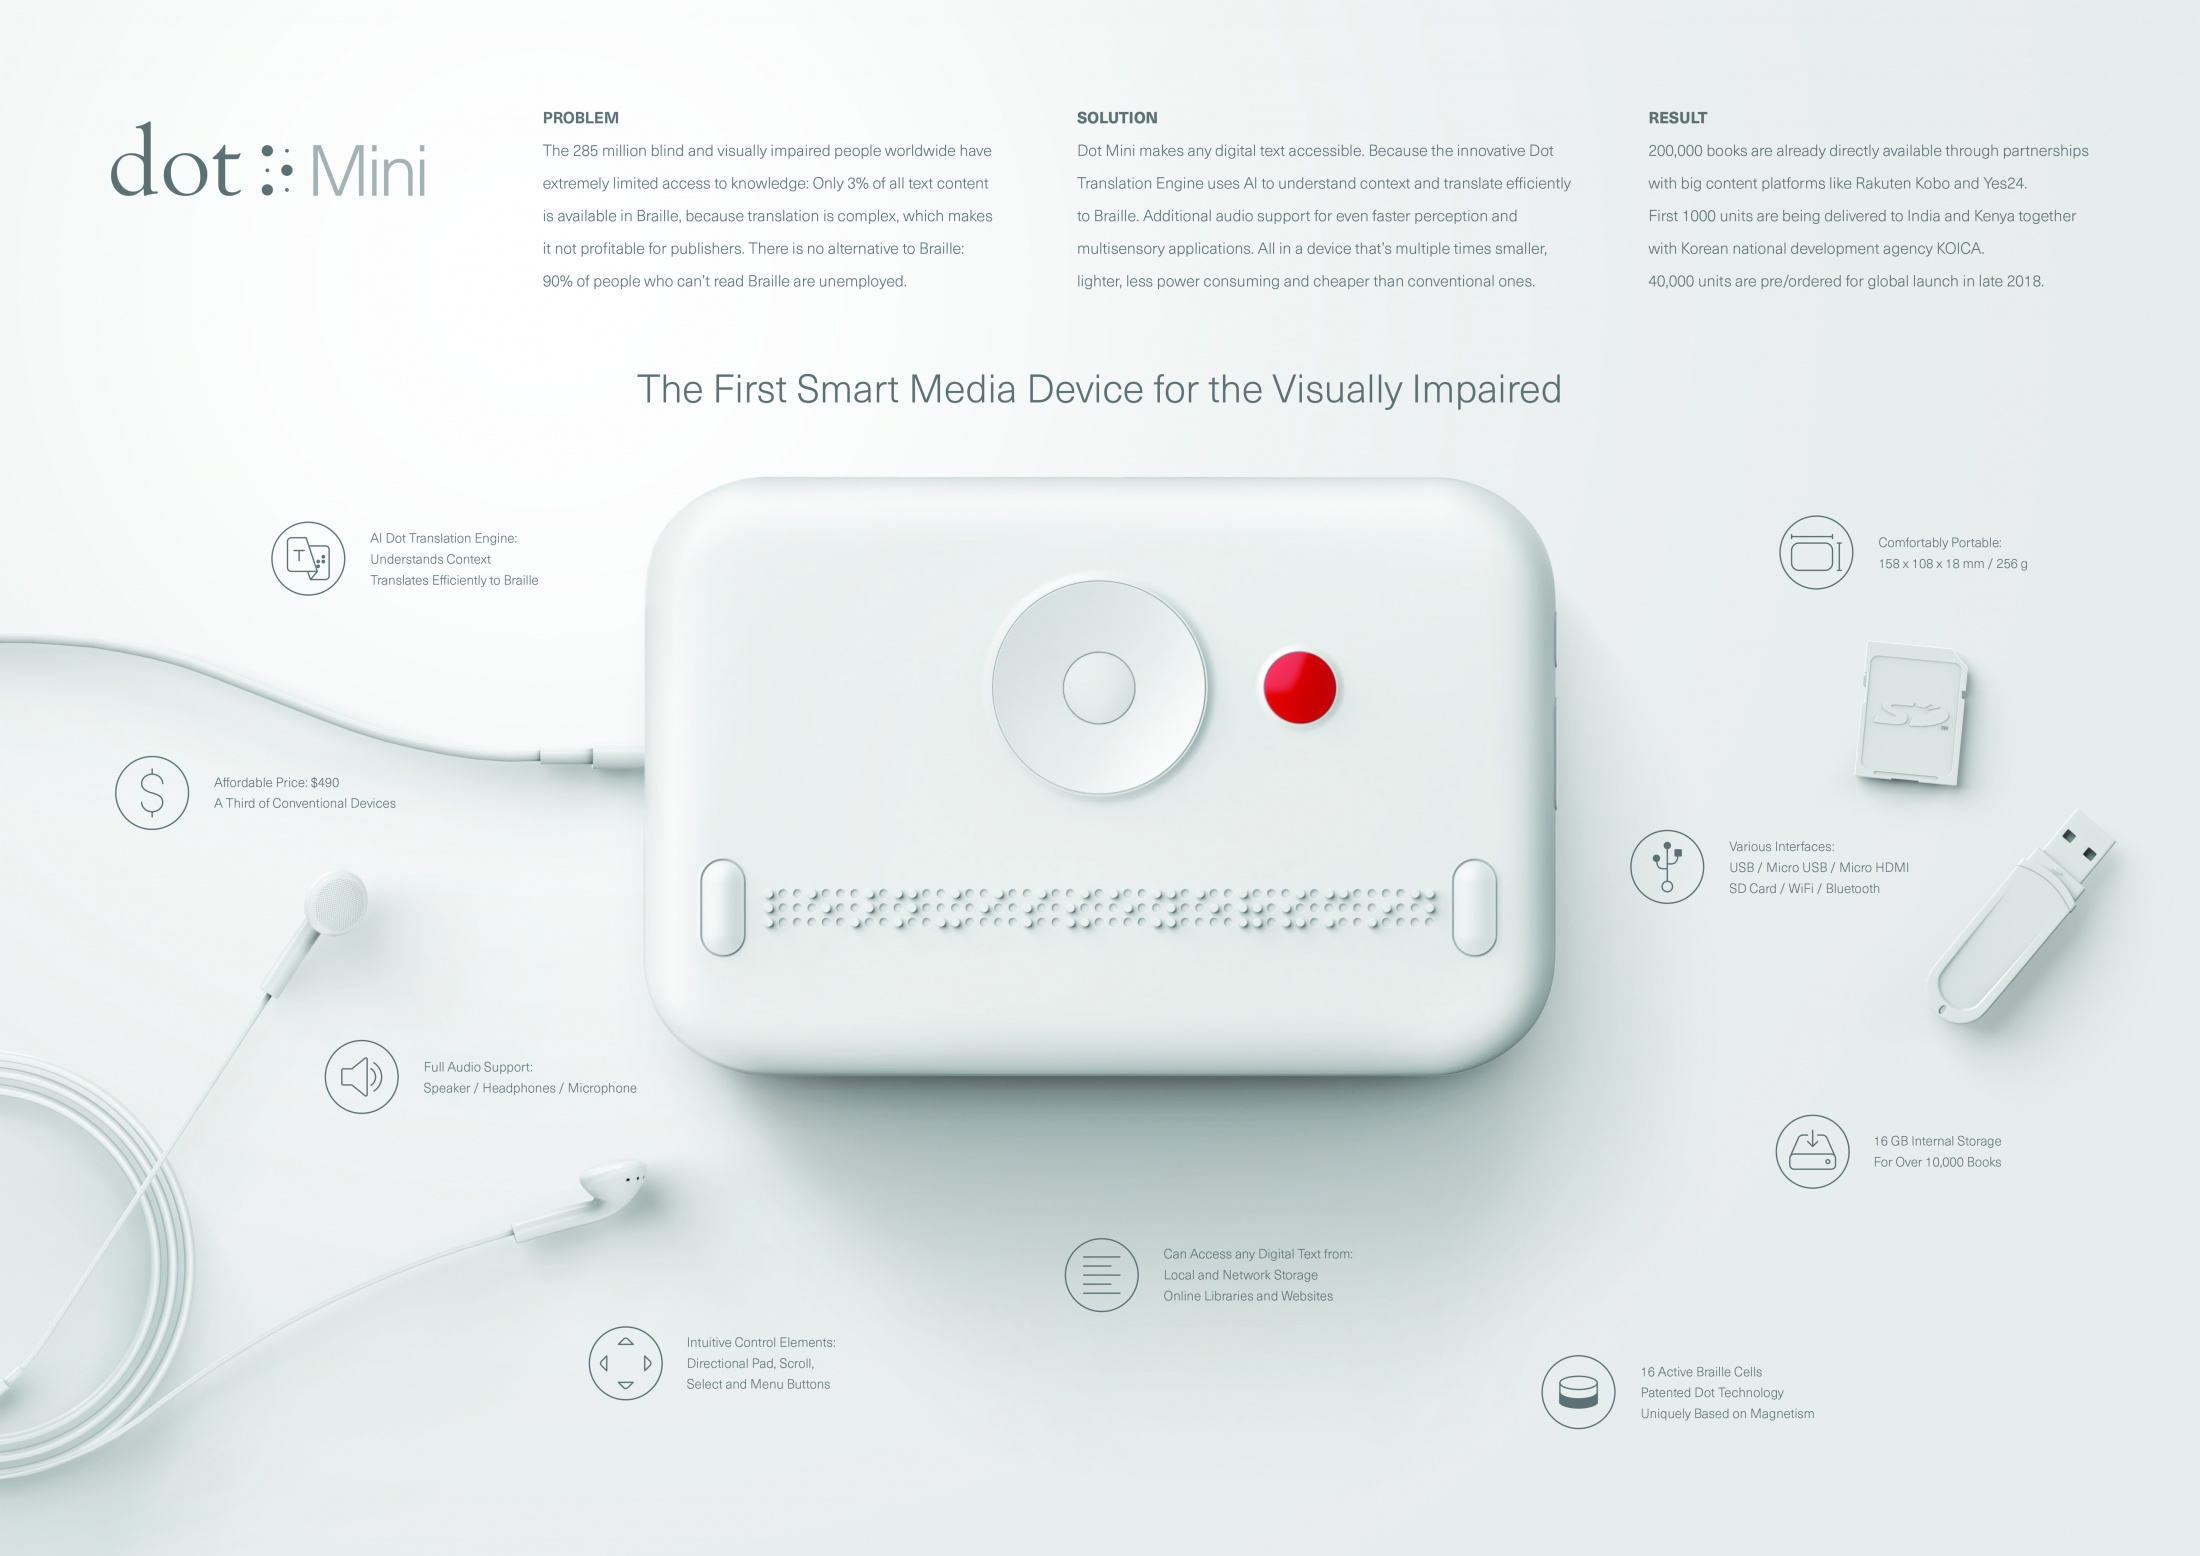 Image Media for Making The World Accessible, Dot by Dot.